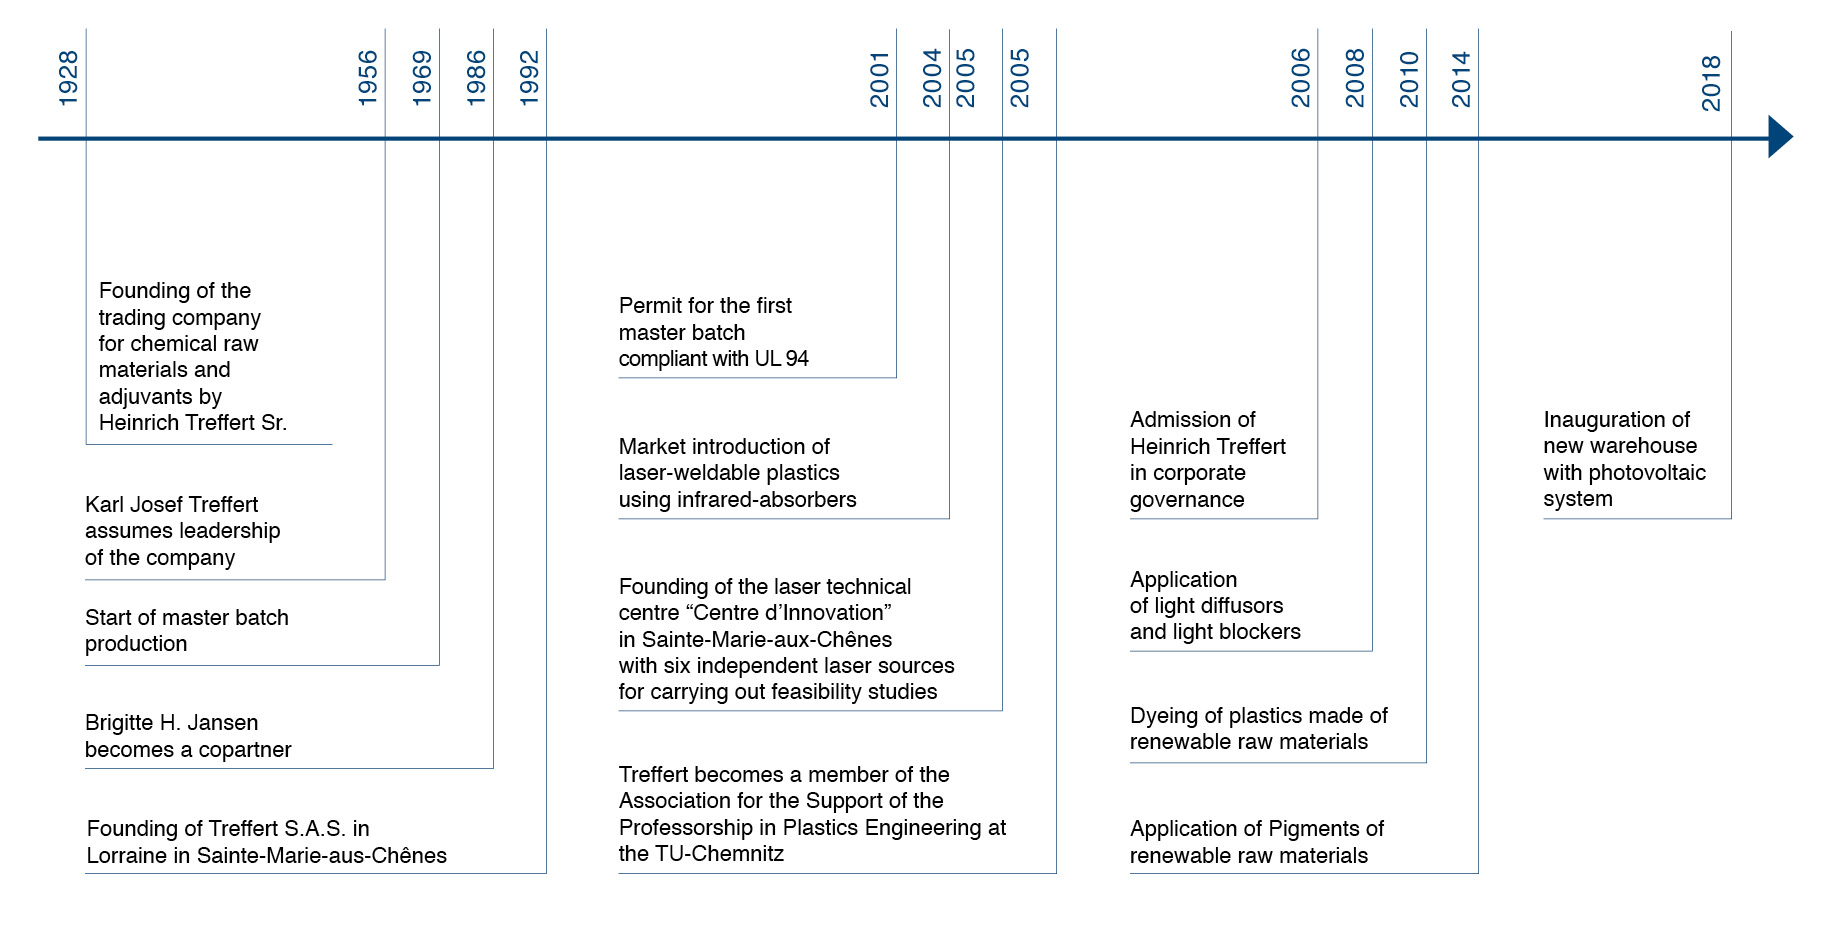 Overview of the history of the Treffert Group that shows the development to a compound und masterbatch manufacturer